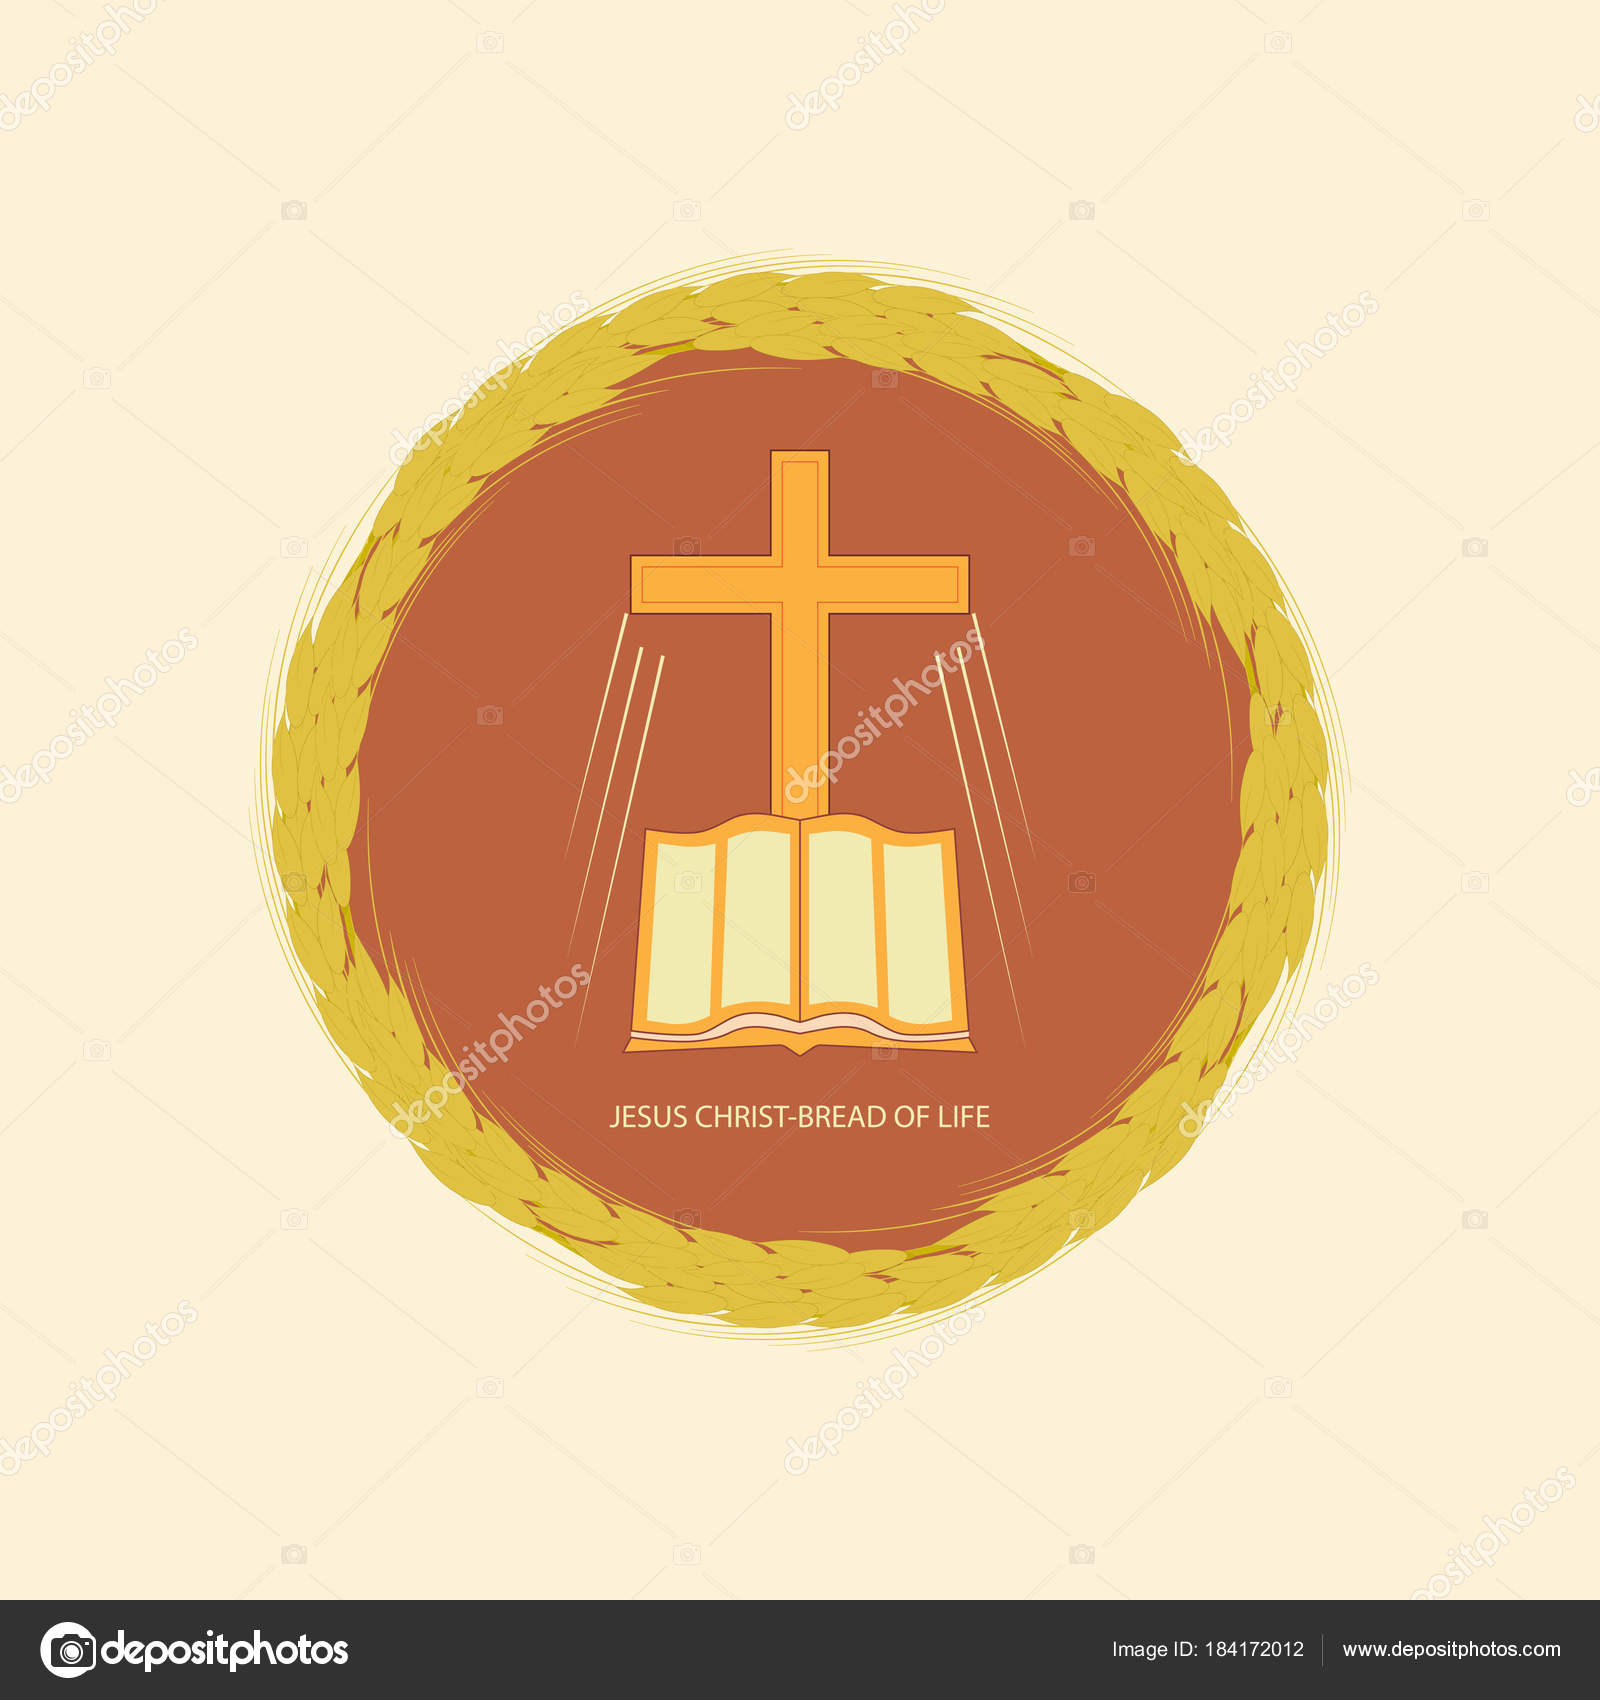 Jesus christ is the bread of life stock vector alexandrus1 the bible and the christian cross in edging made from wheat ears vector logo for christian churches vector by alexandrus1 buycottarizona Choice Image